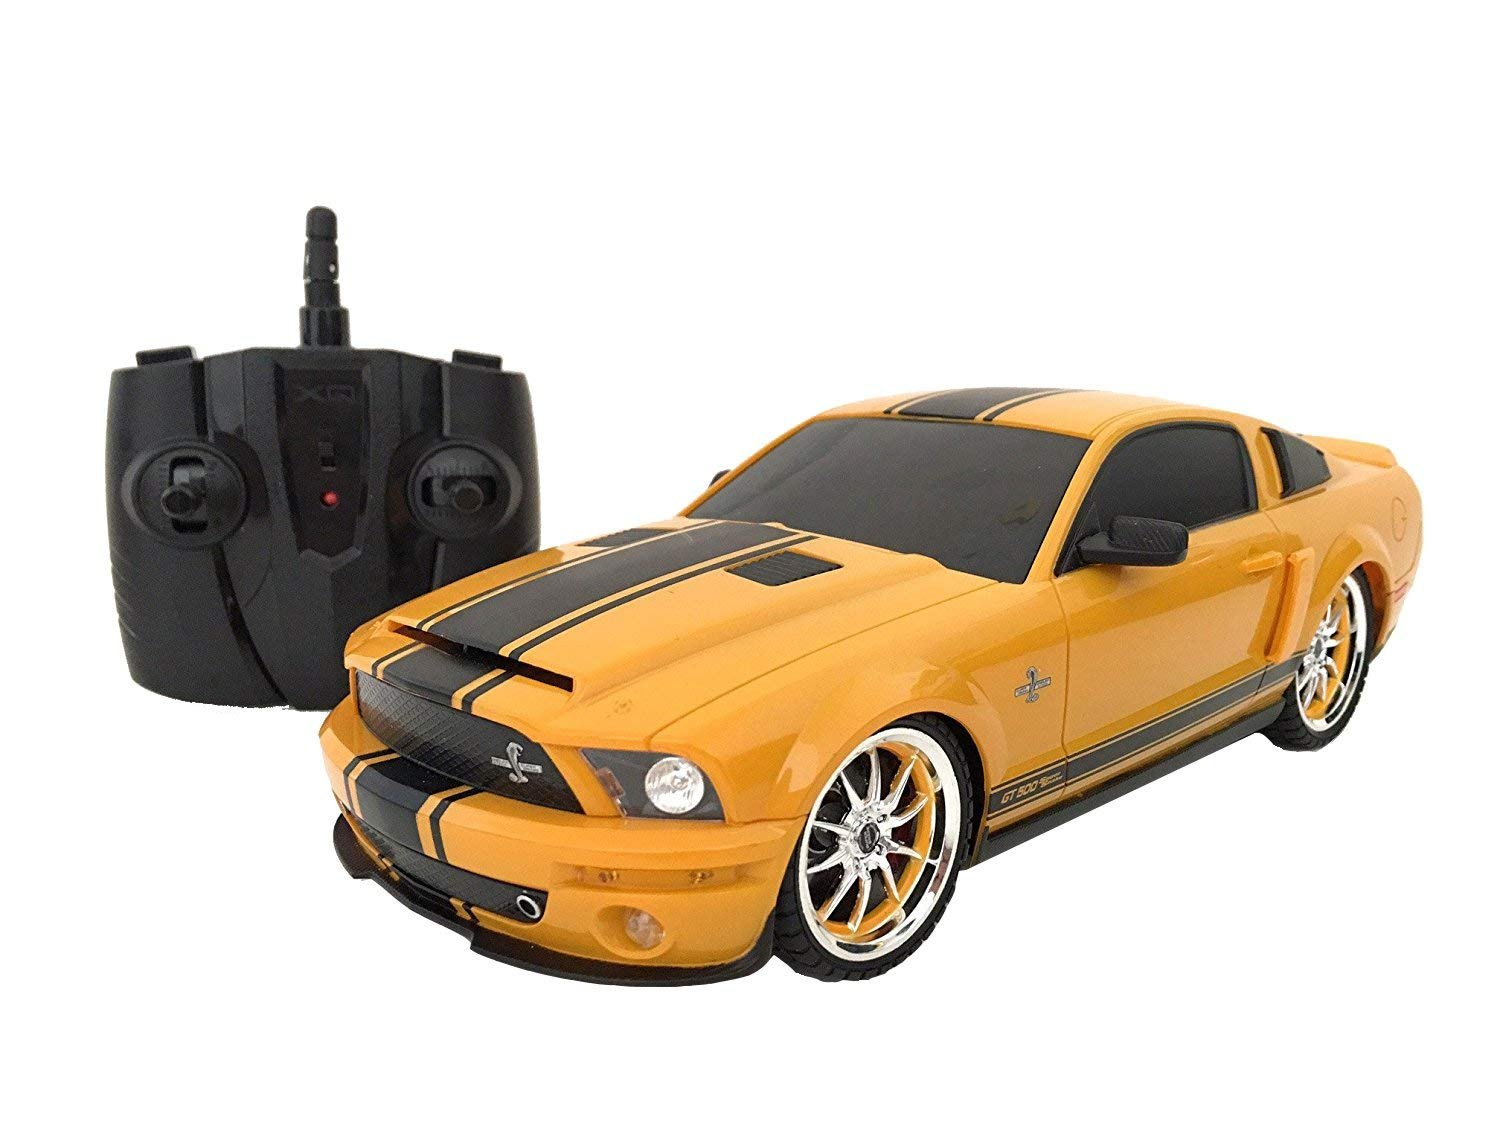 Amazon com officially licensed electric full function 118 ford mustang shelby gt500 super snake rtr rc car colors may vary toys games